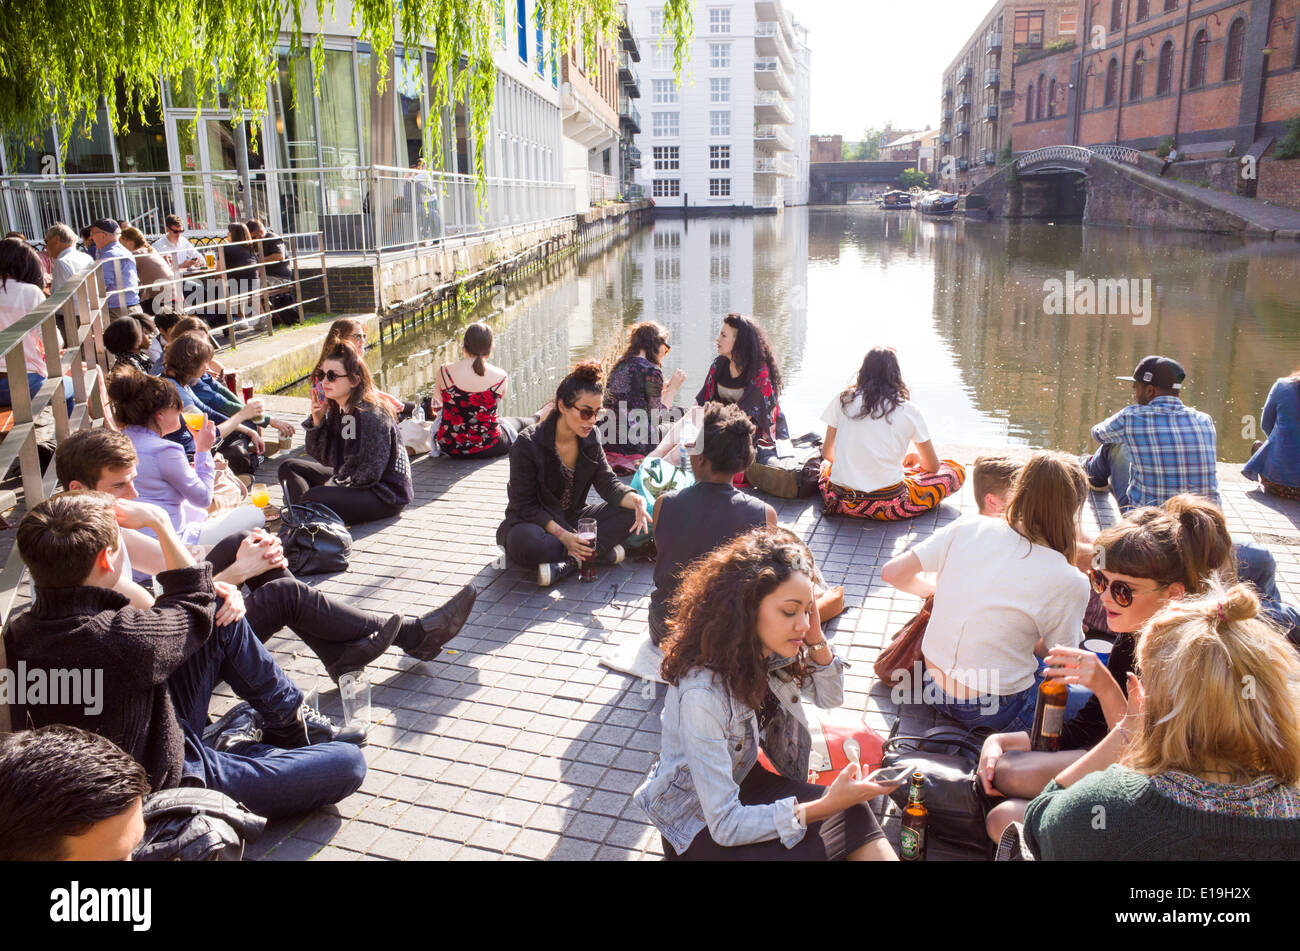 Young people relaxing beside the Regent's Canal in Camden Town, London, England, UK - Stock Image